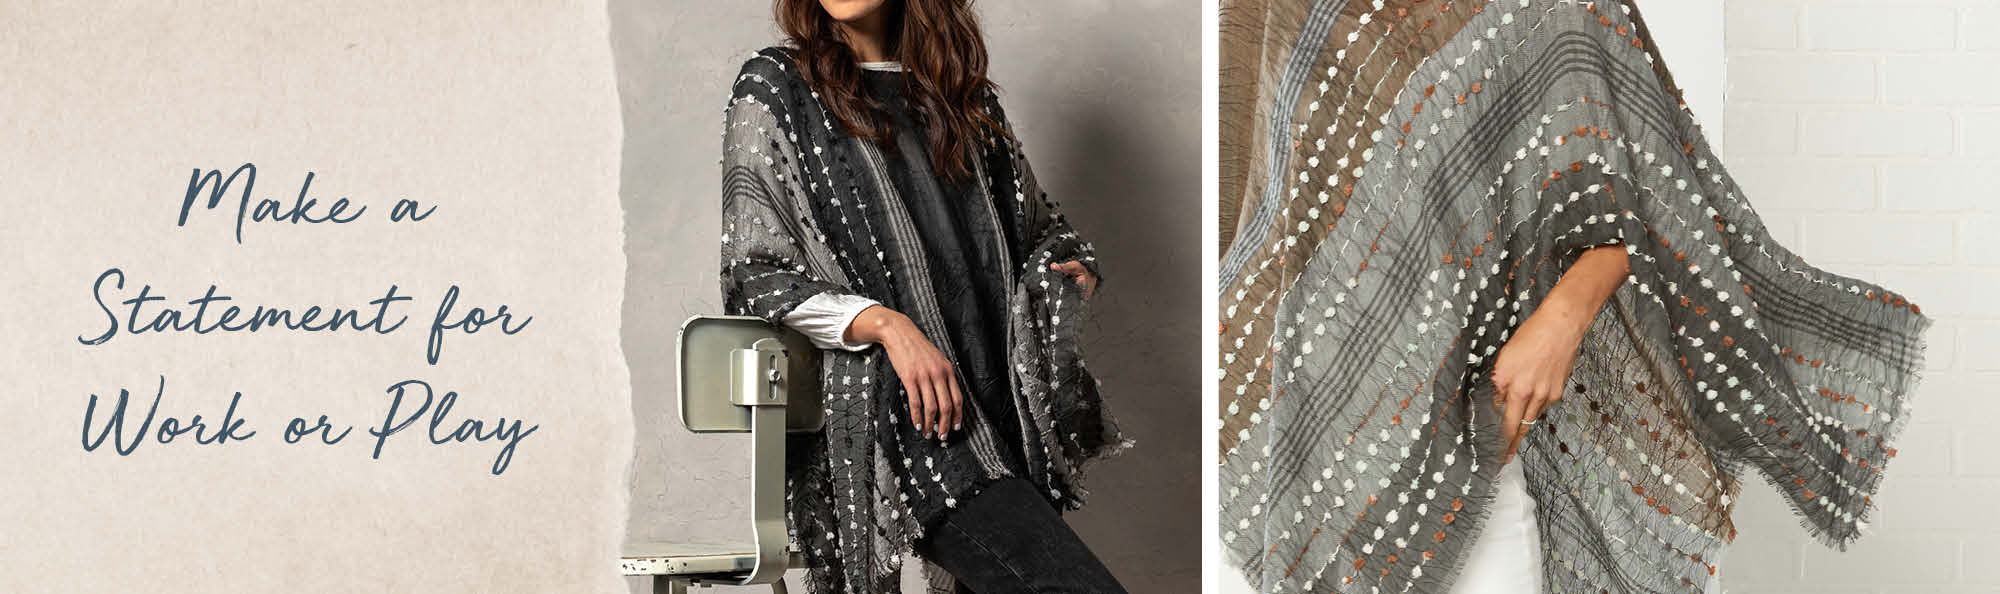 Make a Statement for Work or Play. Woman wearing a textured poncho.